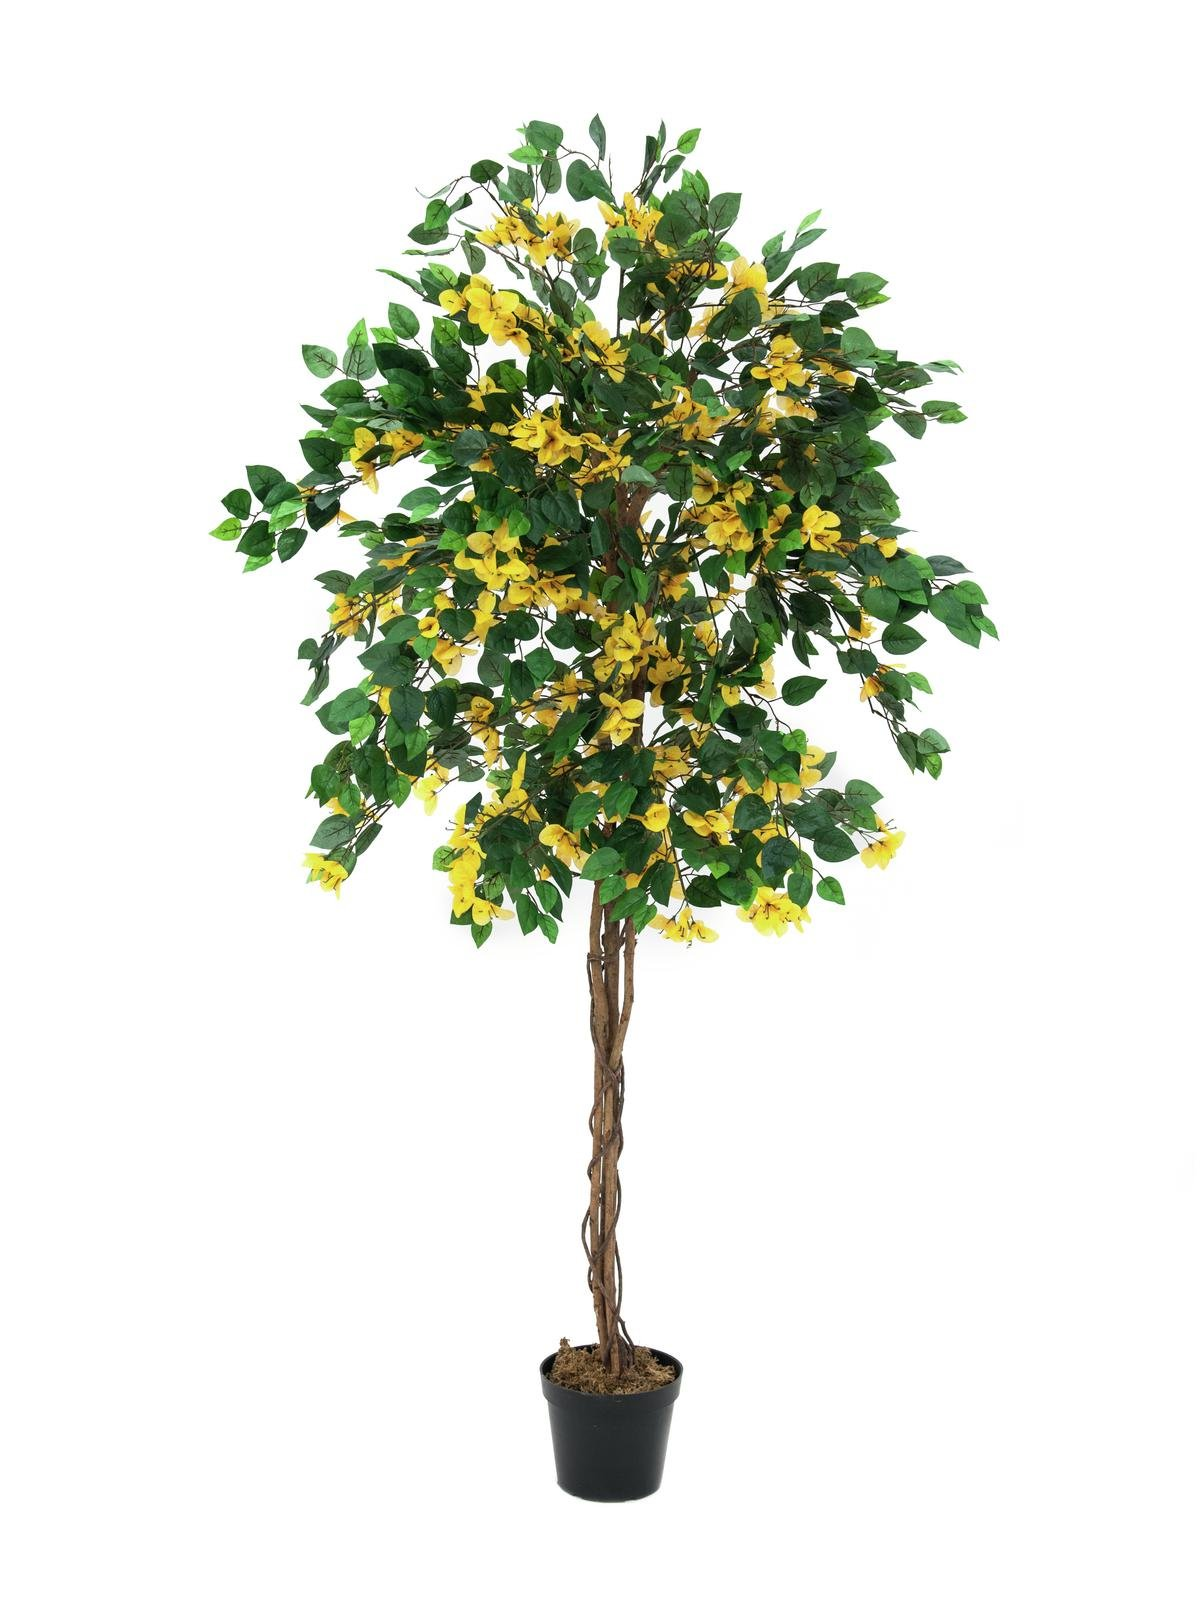 bougainvillier-artificiel-jaune-150cm